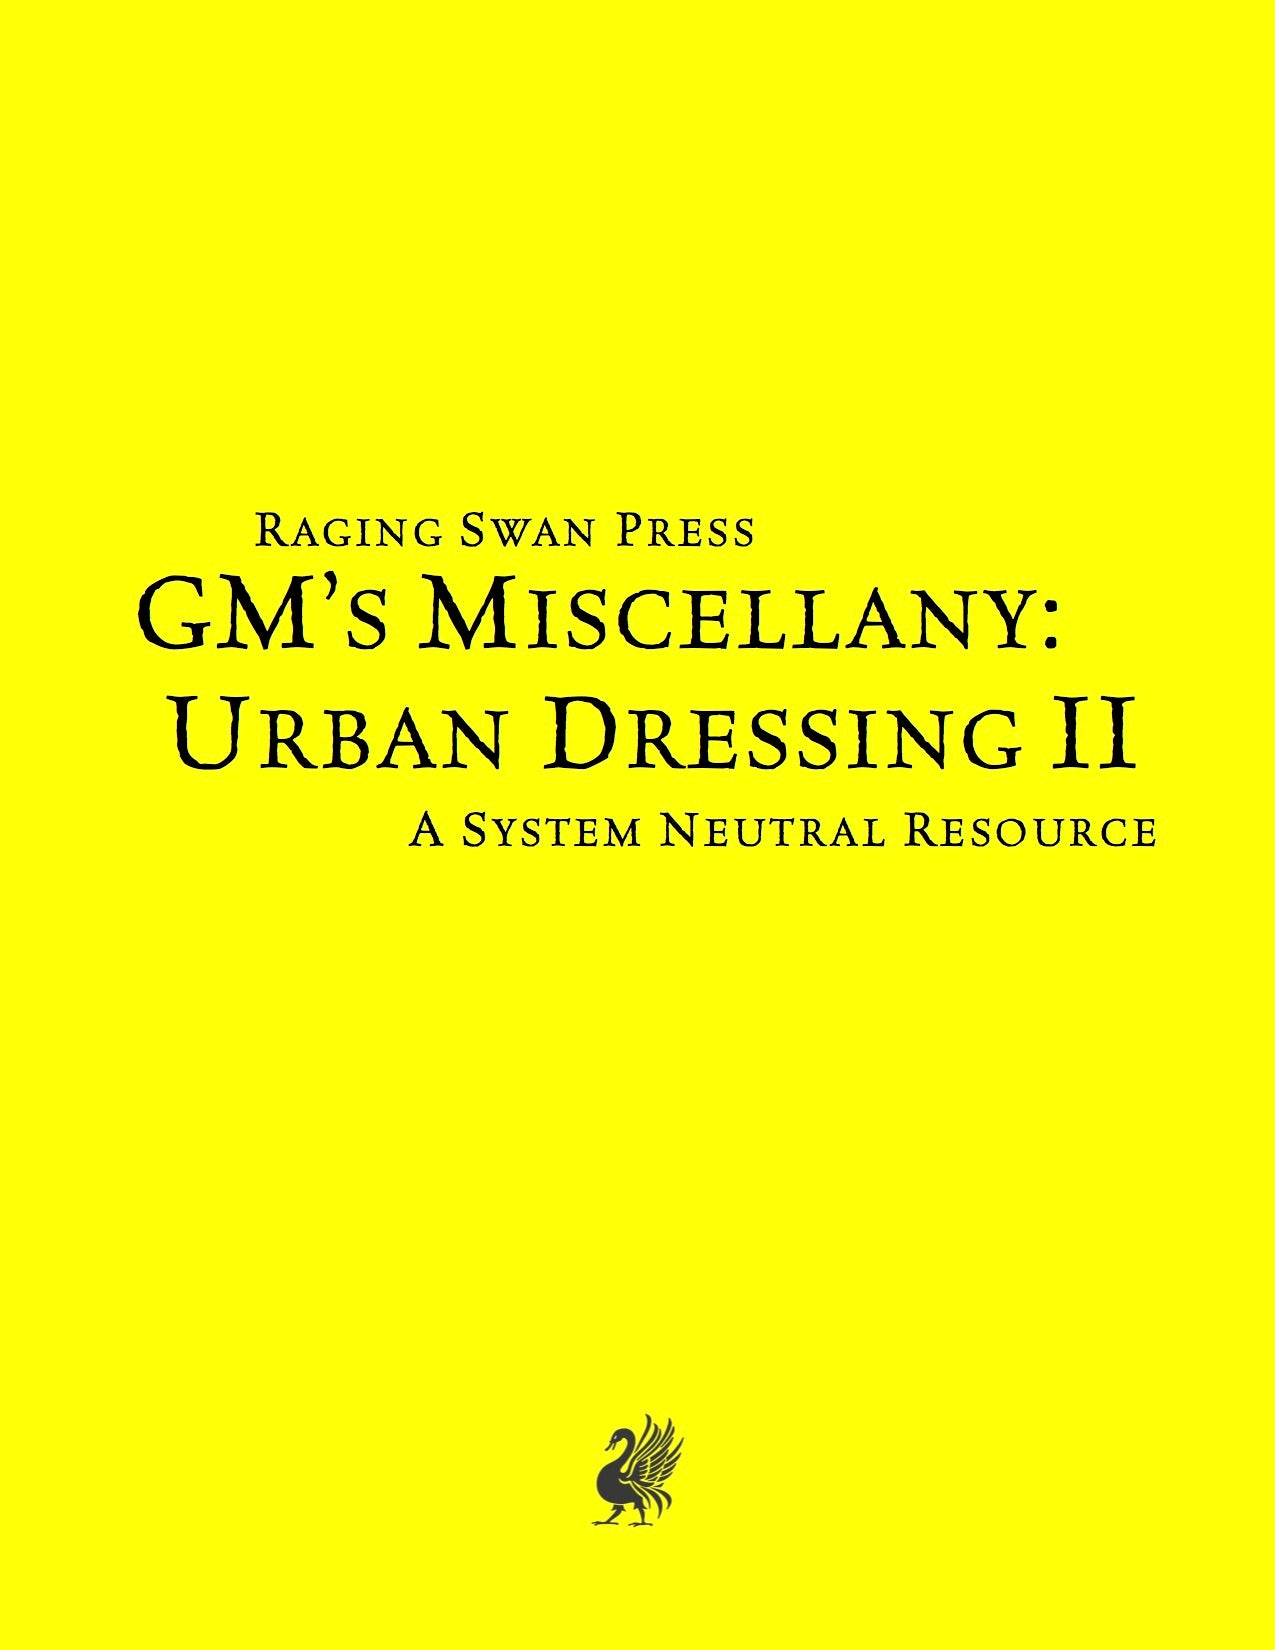 GM's Miscellany: Urban Dressing II (SNE)